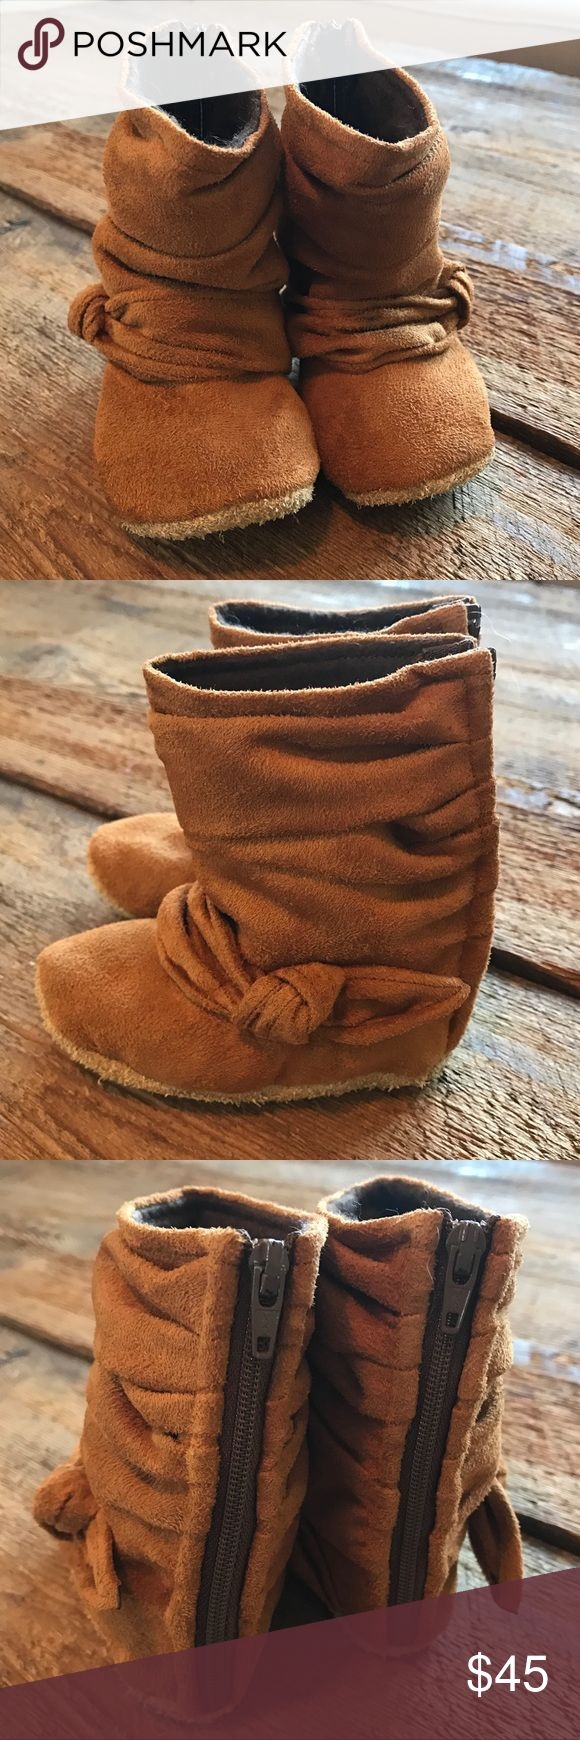 Gracious May Leather Booties New without the box. Gracious May leather booties. So adorable and impeccably made. Never worn, no flaws. Infant/toddler size 5. These run small. Closer to a 4, IMO. Gracious May Shoes Baby & Walker